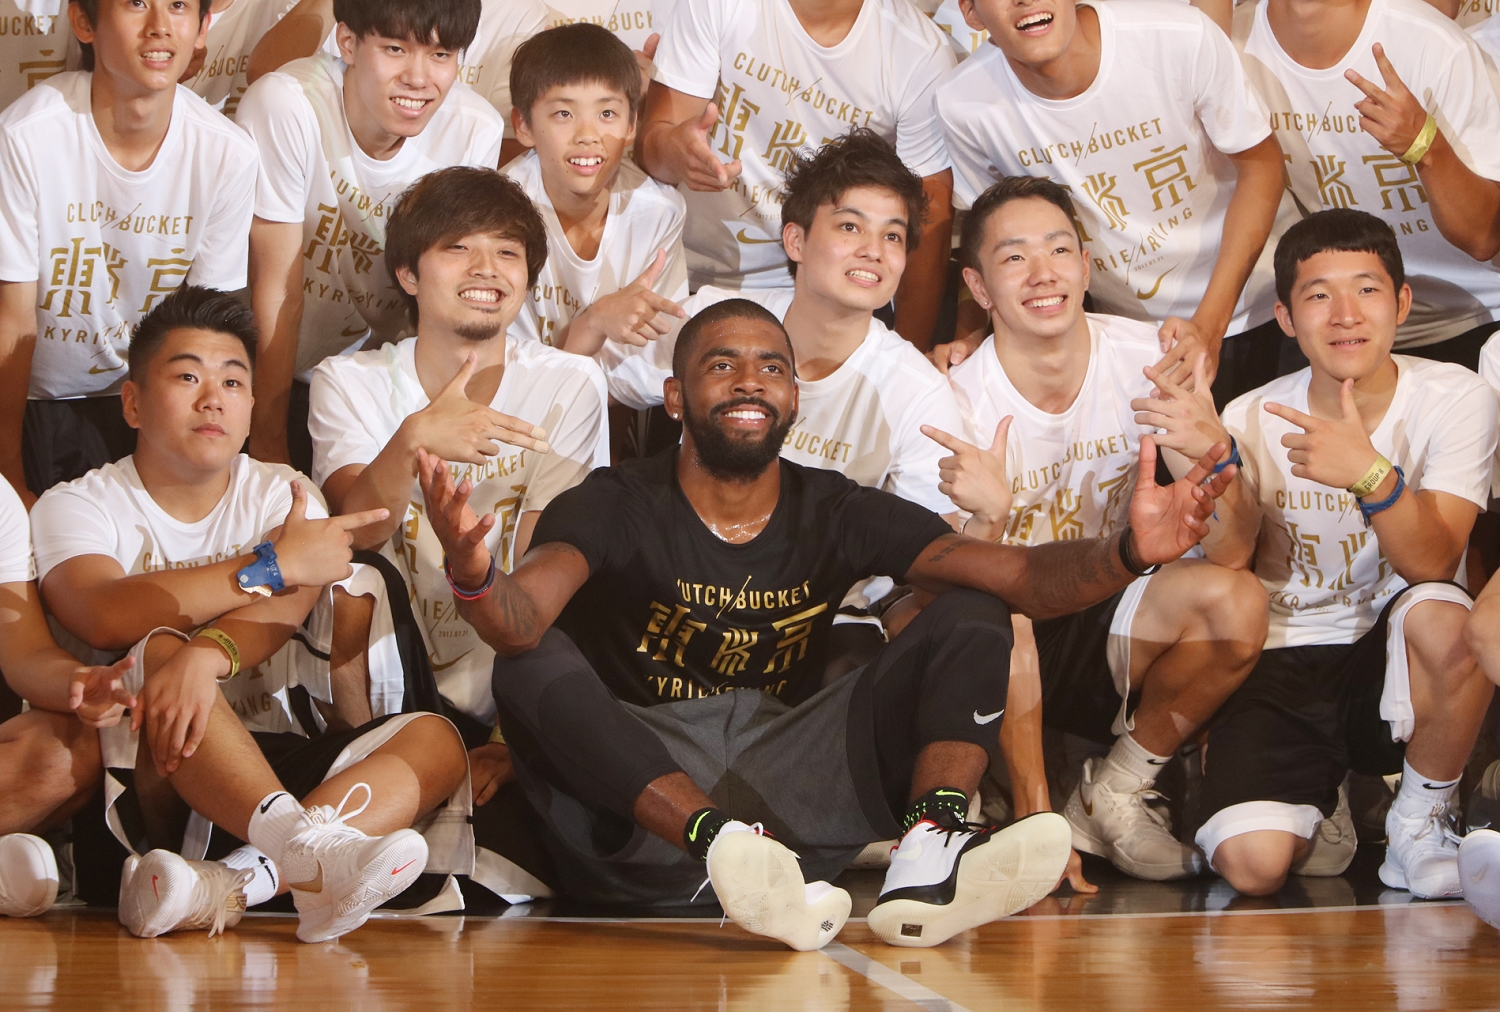 Kyrie Irving Clutch Bucket Tokyo